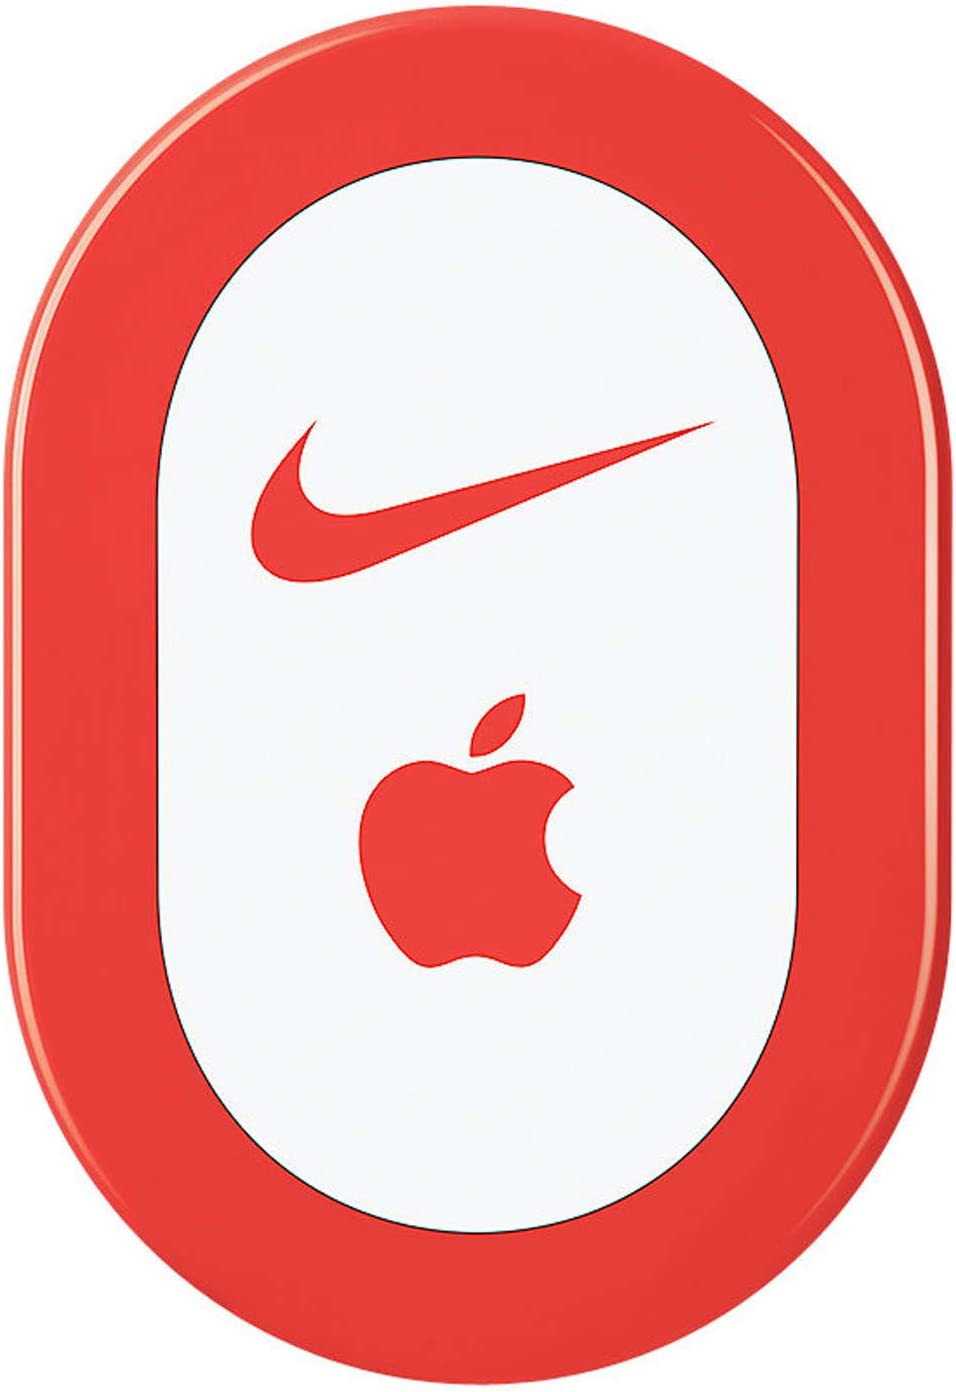 política Permanentemente Frugal  Amazon.com: Nike+ Standalone Sensor - One - Red: Clothing